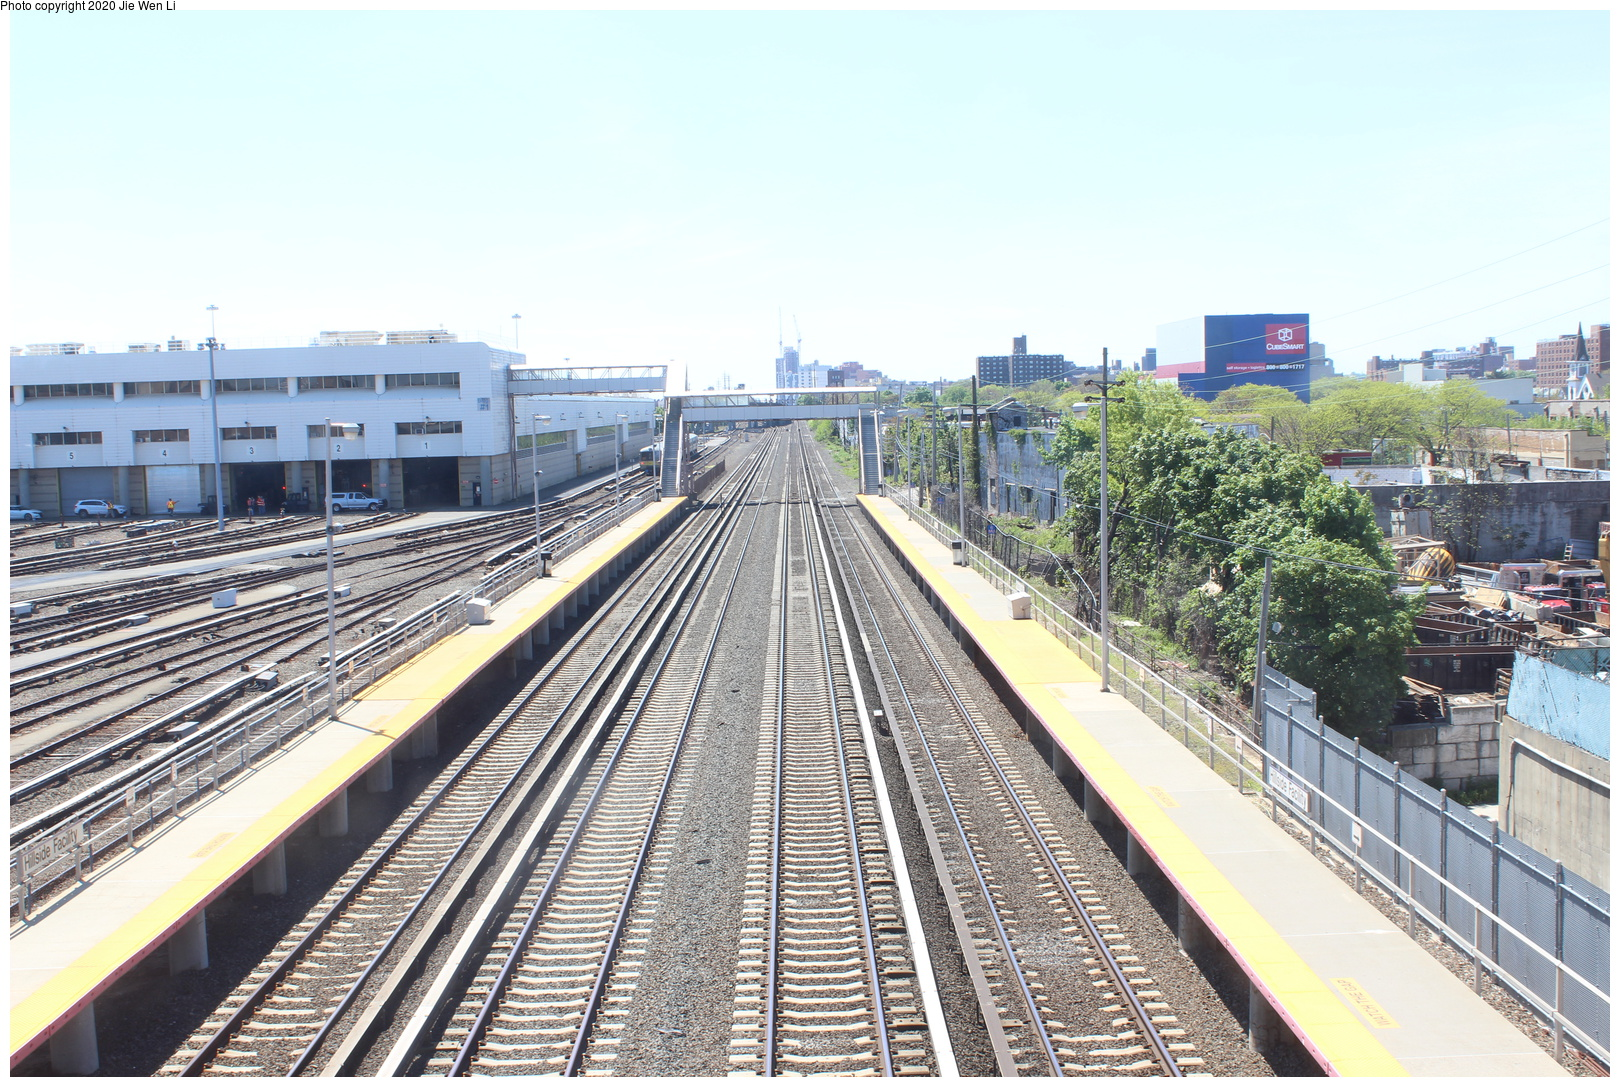 (213k, 1026x1044)<br><b>Country:</b> United States<br><b>City:</b> New York<br><b>System:</b> New York City Transit<br><b>Location:</b> East 180th Street Yard<br><b>Car:</b> Low-V 4932/5324 <br><b>Photo by:</b> Joel Shanus<br><b>Viewed (this week/total):</b> 0 / 1015